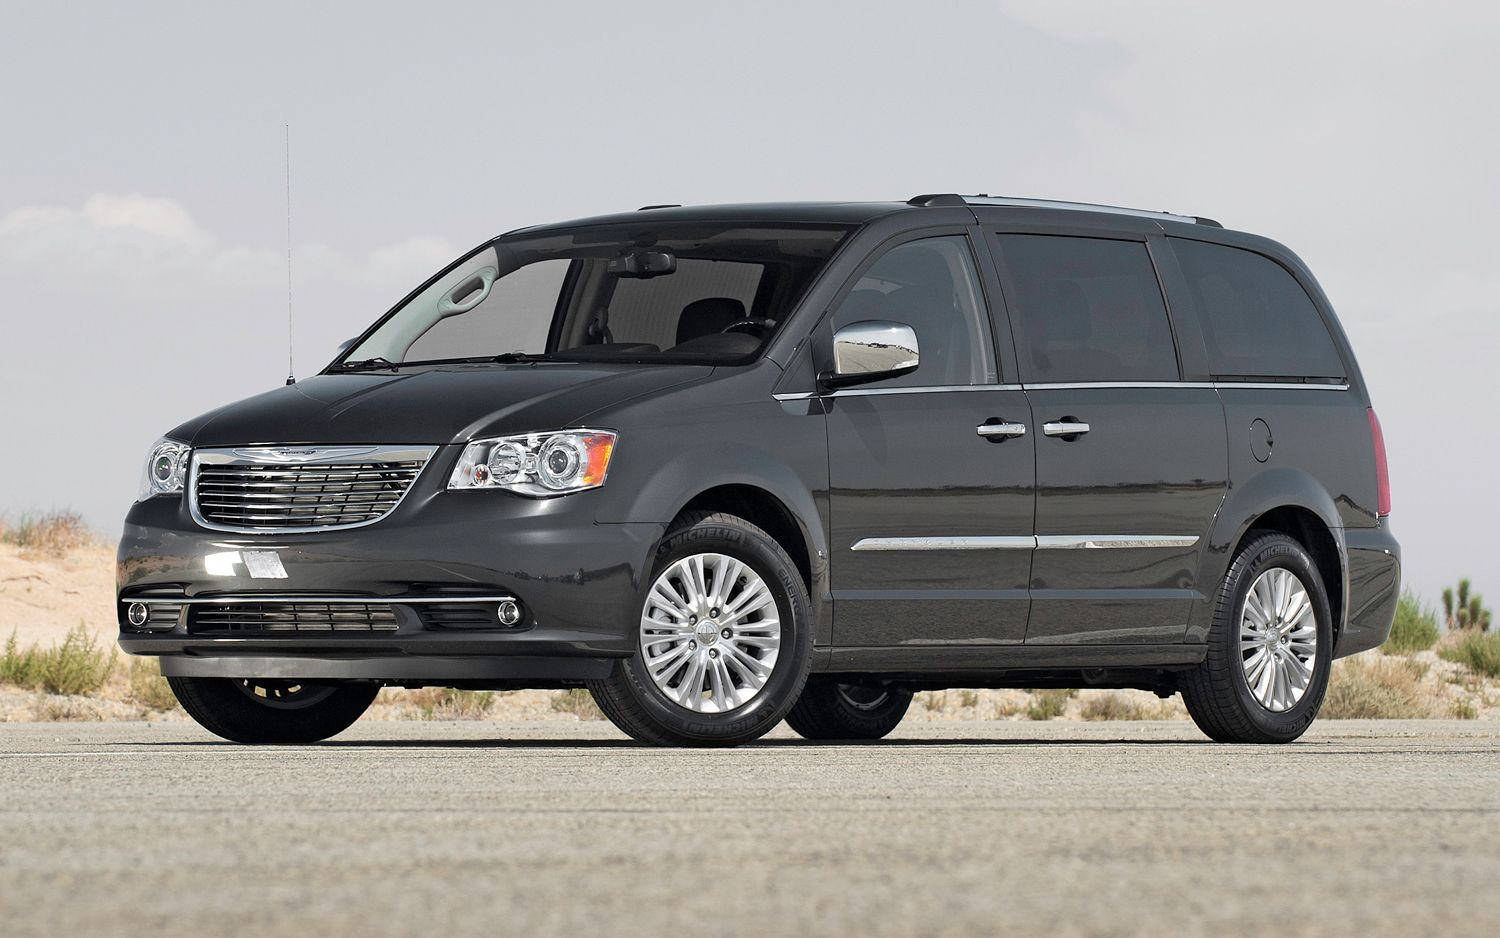 2006 chrysler town and country wiringdiagram image details. Cars Review. Best American Auto & Cars Review